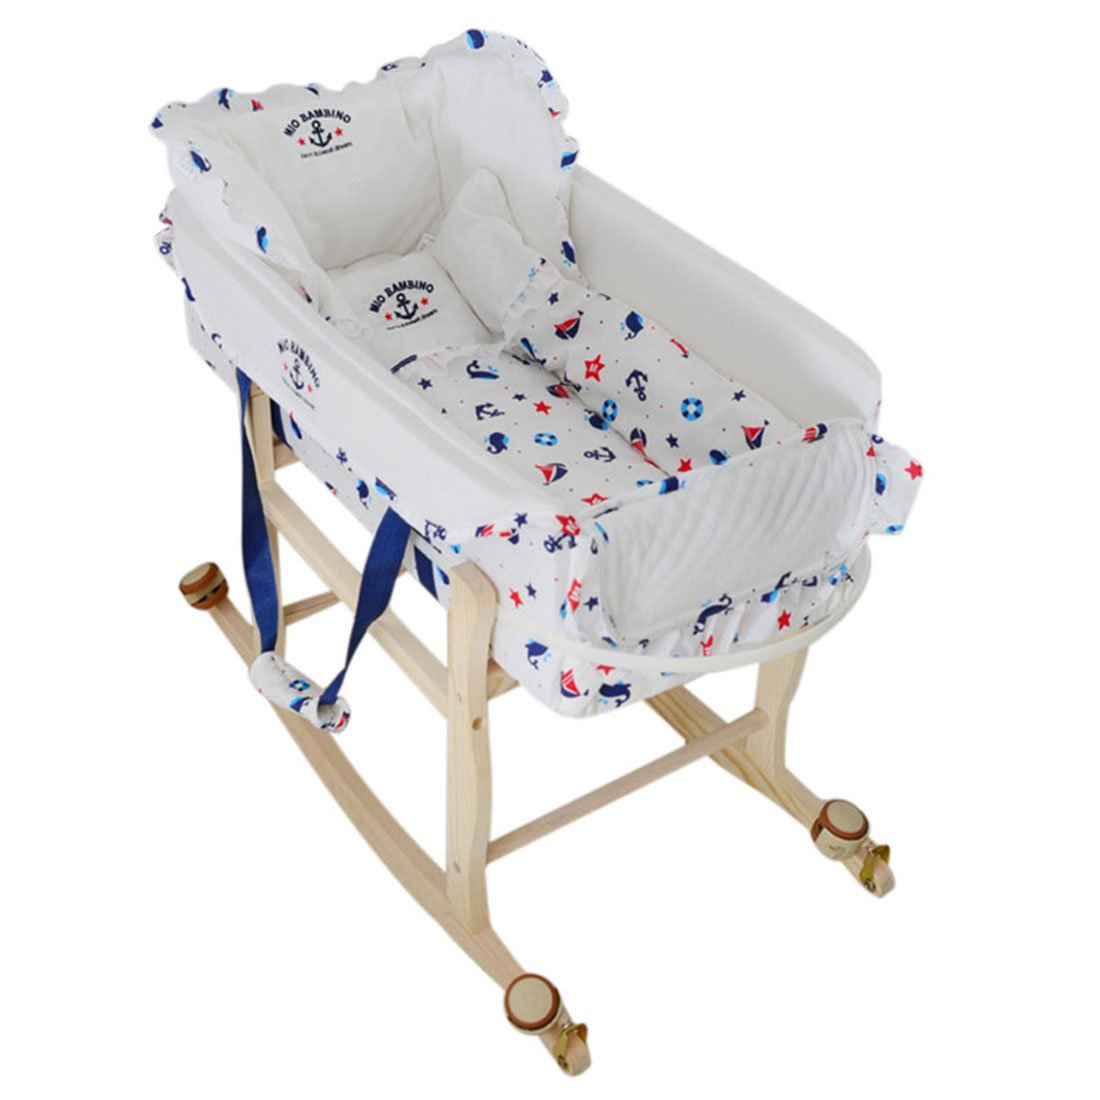 Enerhu 2 in 1 Infant Bassinet Crib Cradle with Portable Bed for Newborn Baby Travel #1